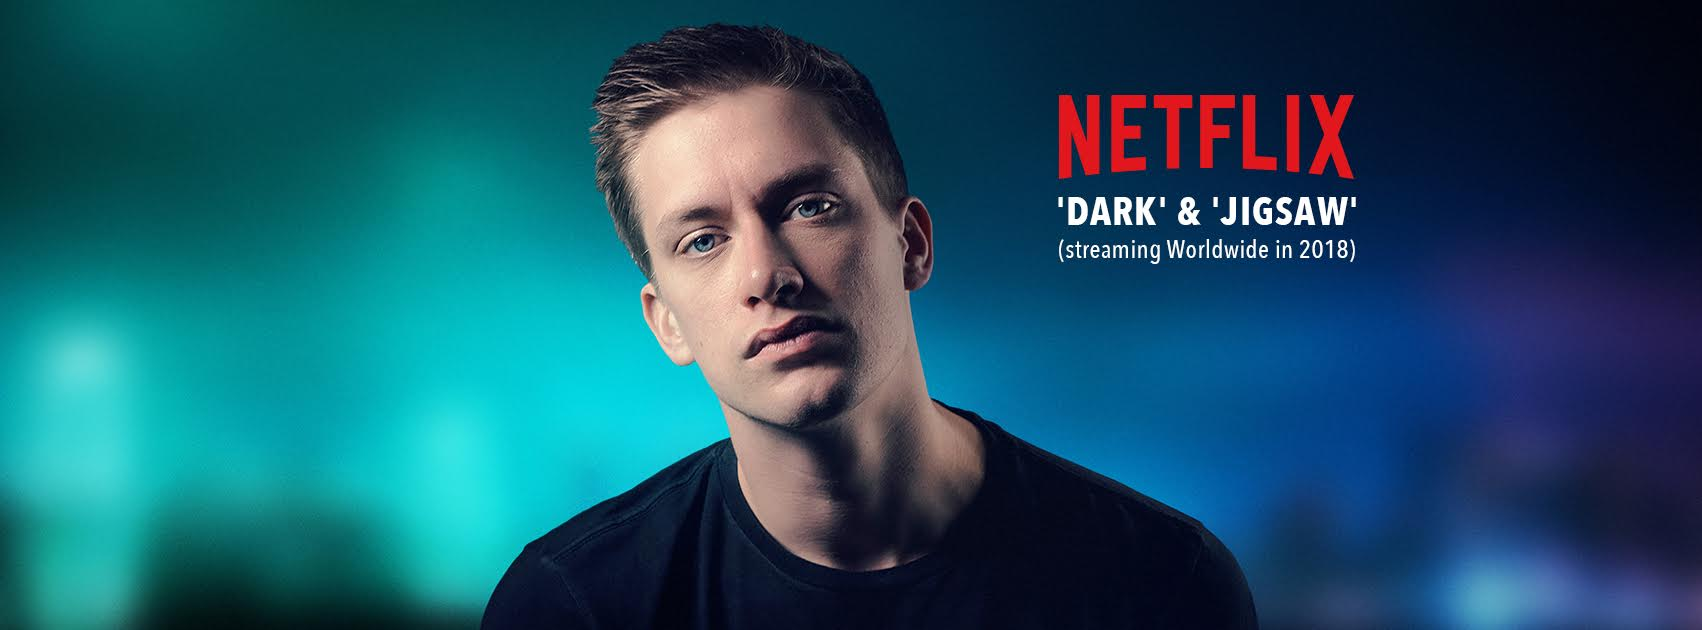 Daniel Sloss Stand up Netflix